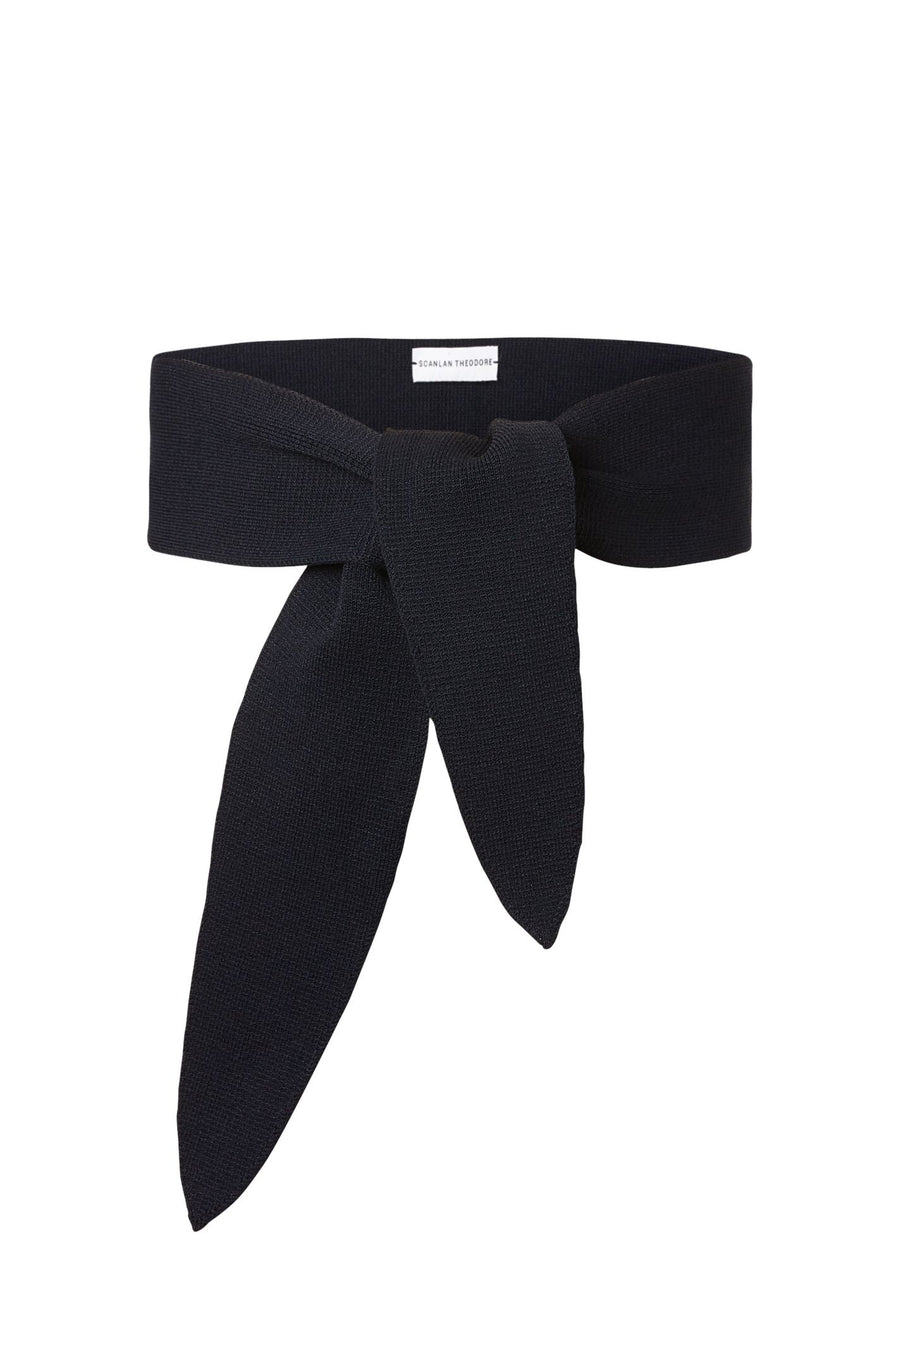 CREPE KNIT BELT, wraps around waist, navy color